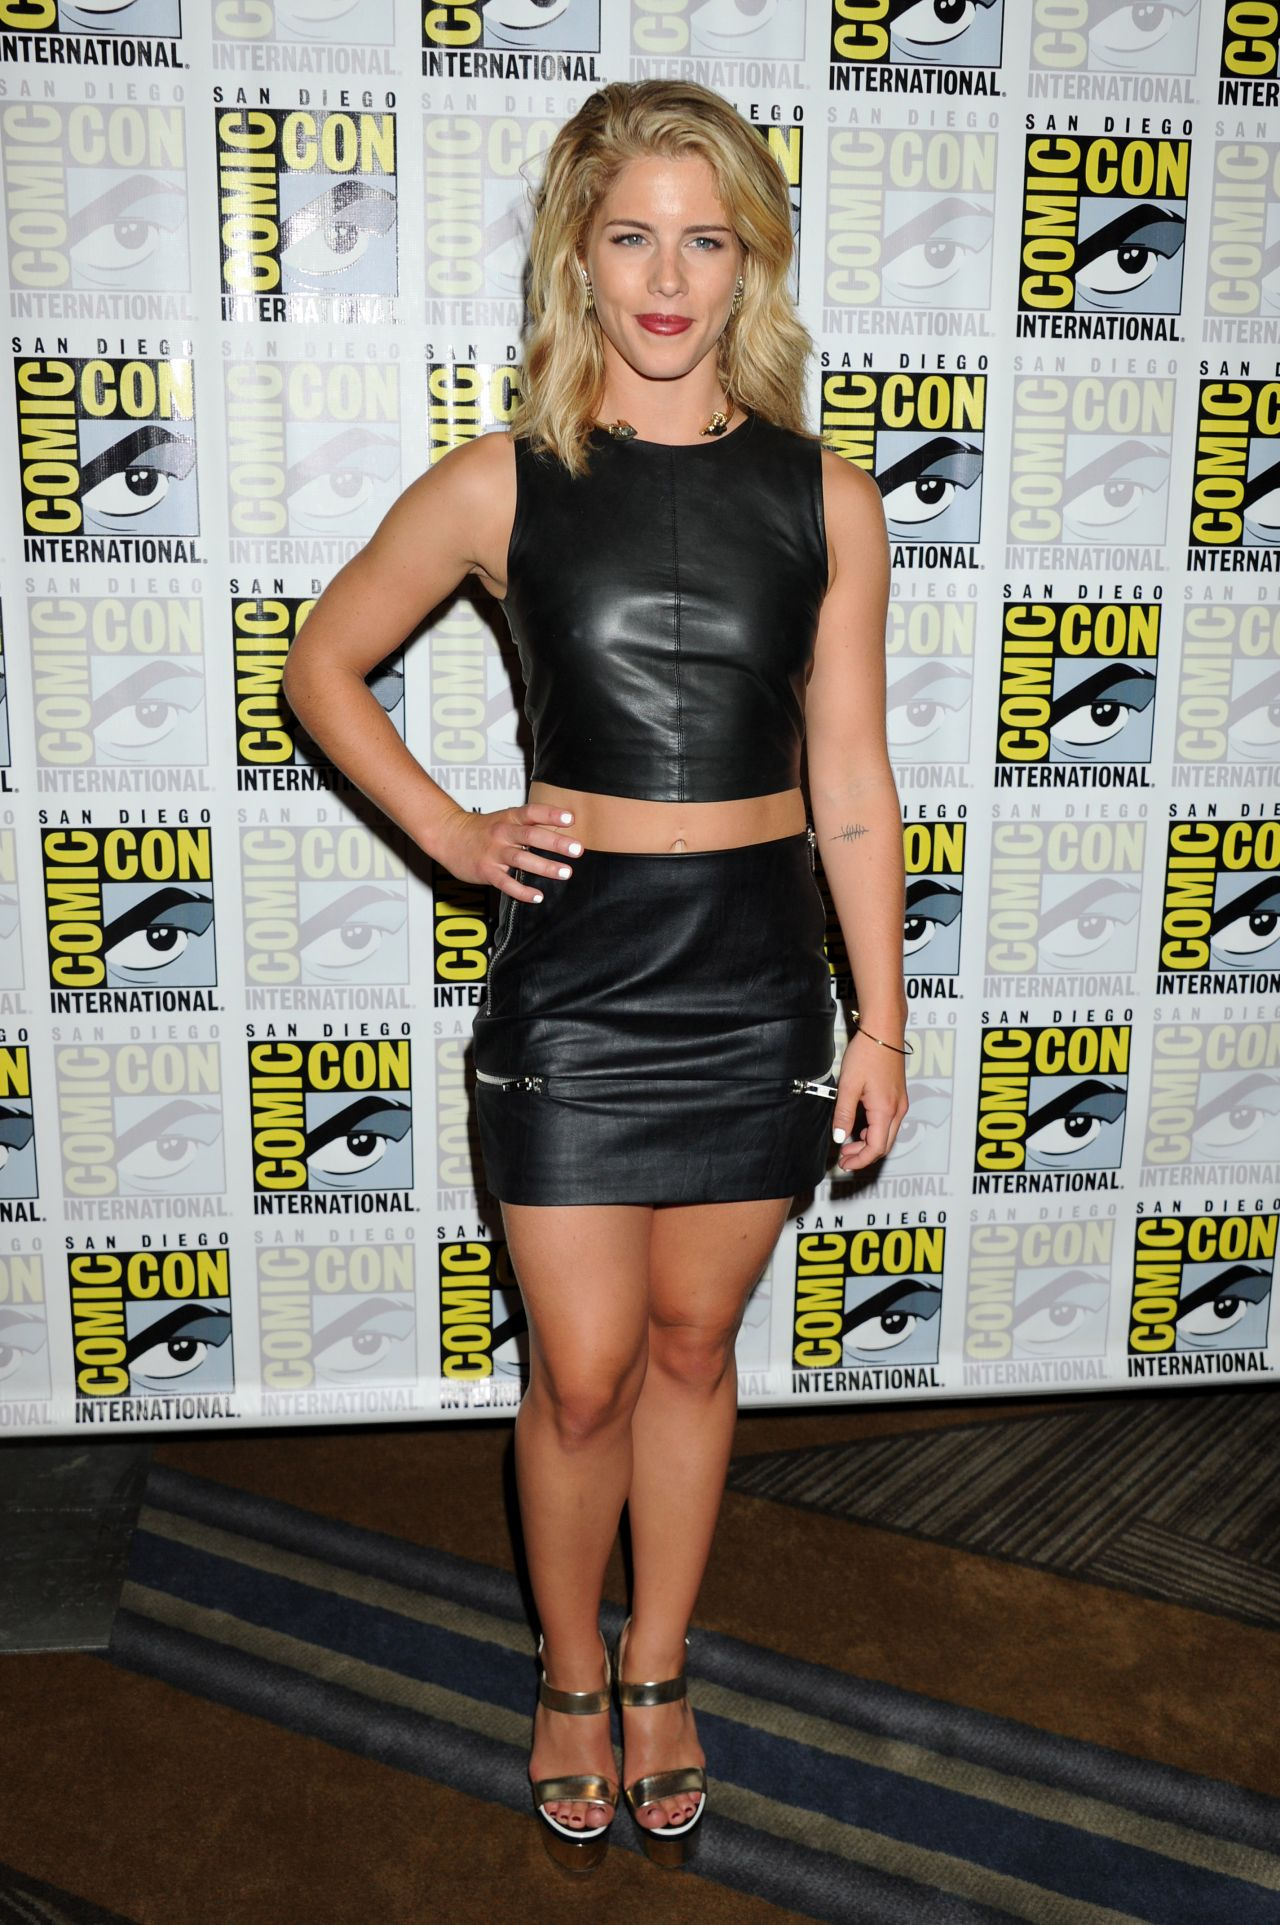 Bett Comic Emily Bett Rickards Arrow Press Line At Comic Con In San Diego